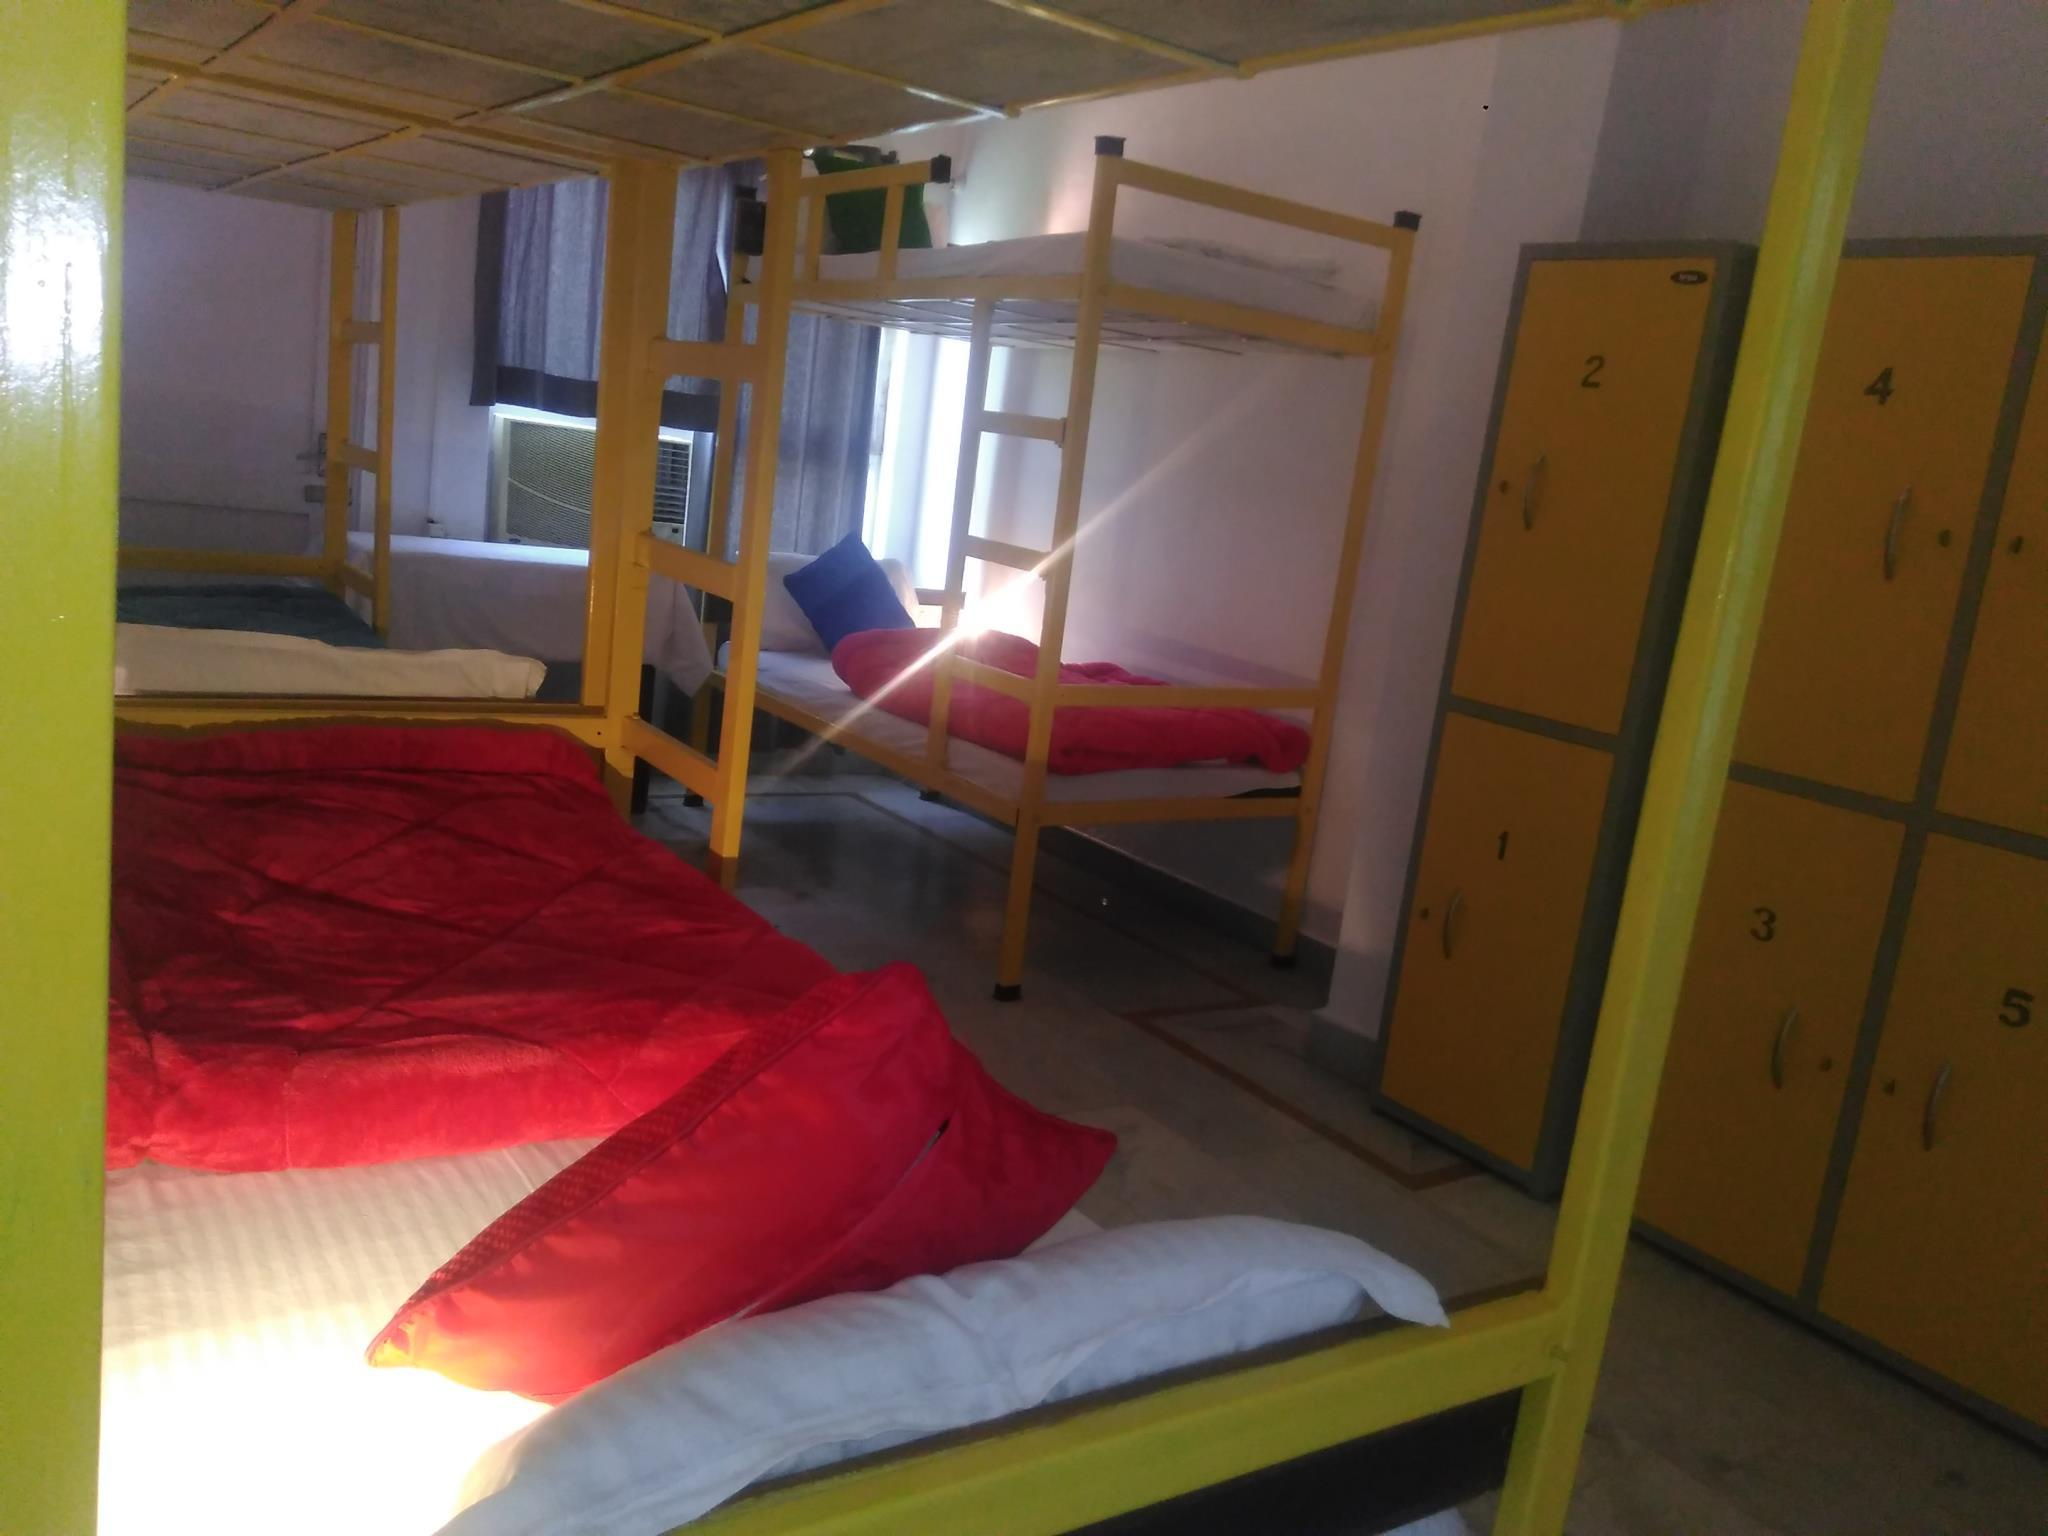 Bunk Bed in 6-Bed Mixed Dormitory Room with Air Conditioning